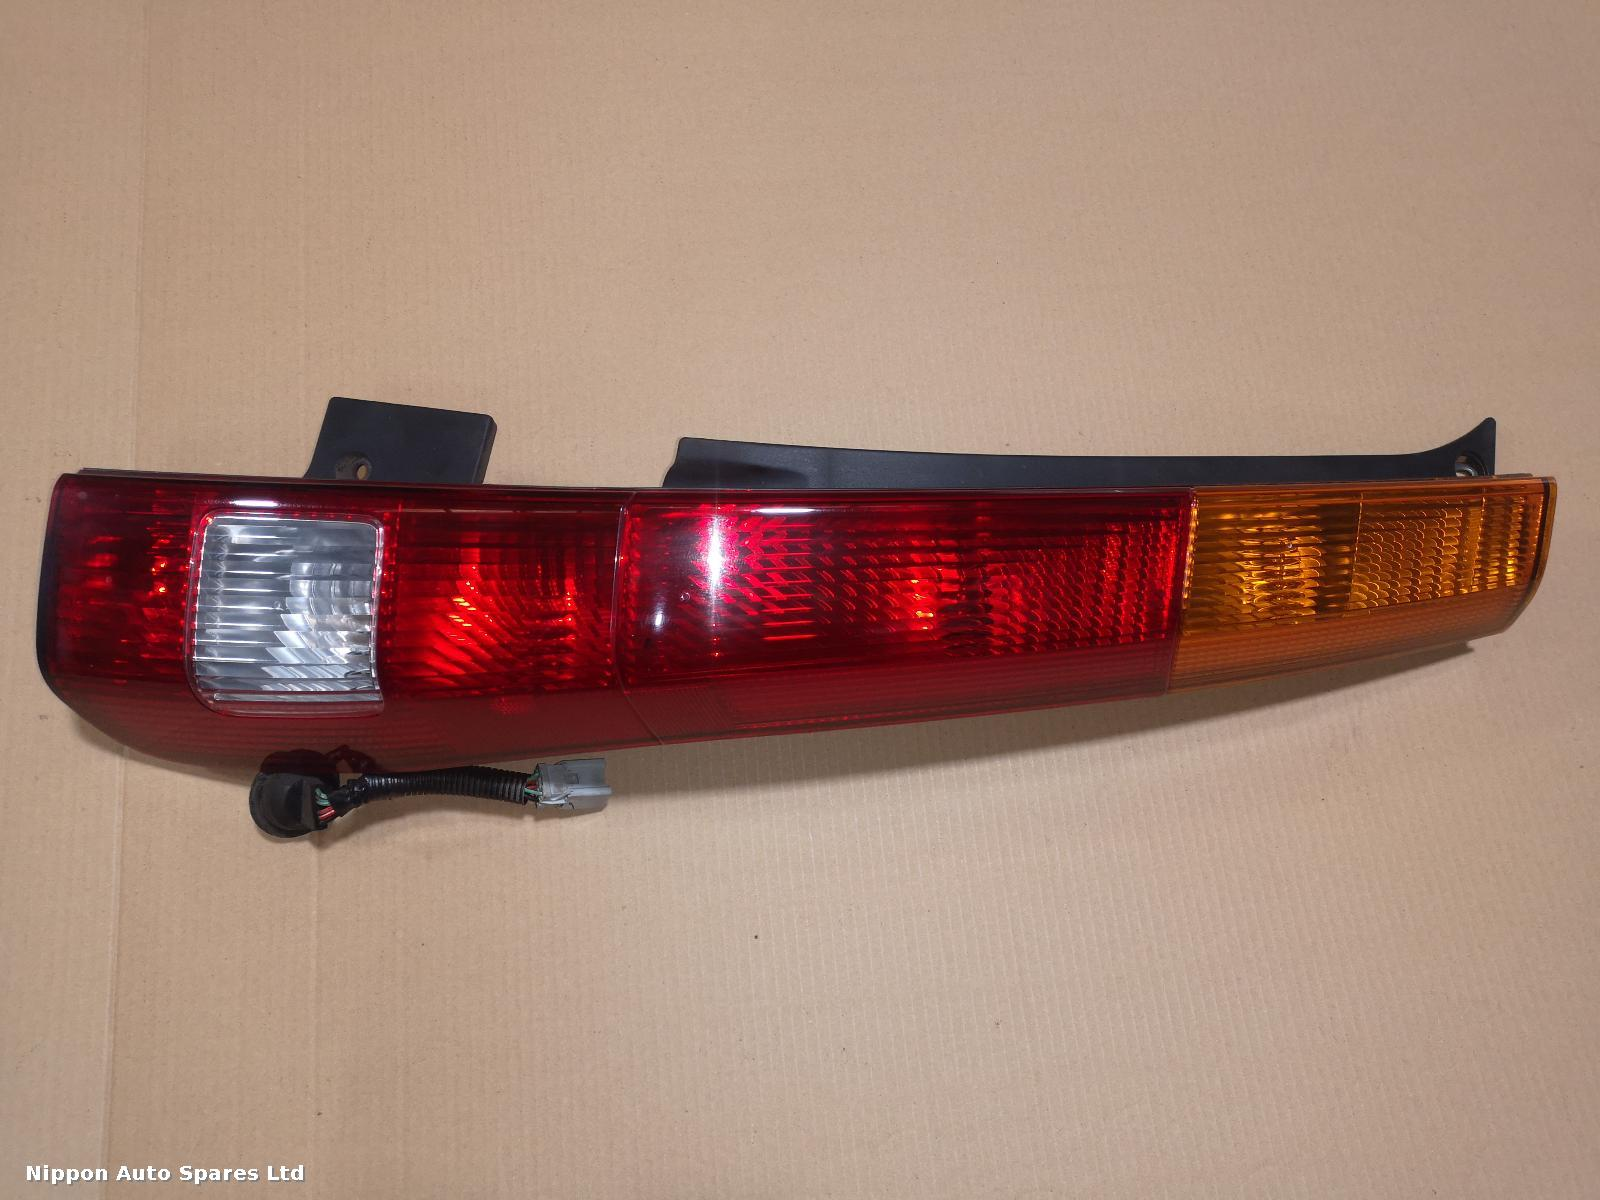 Honda CRV R Taillight PRE FACE LIFT ORANGE TYPE: 55894